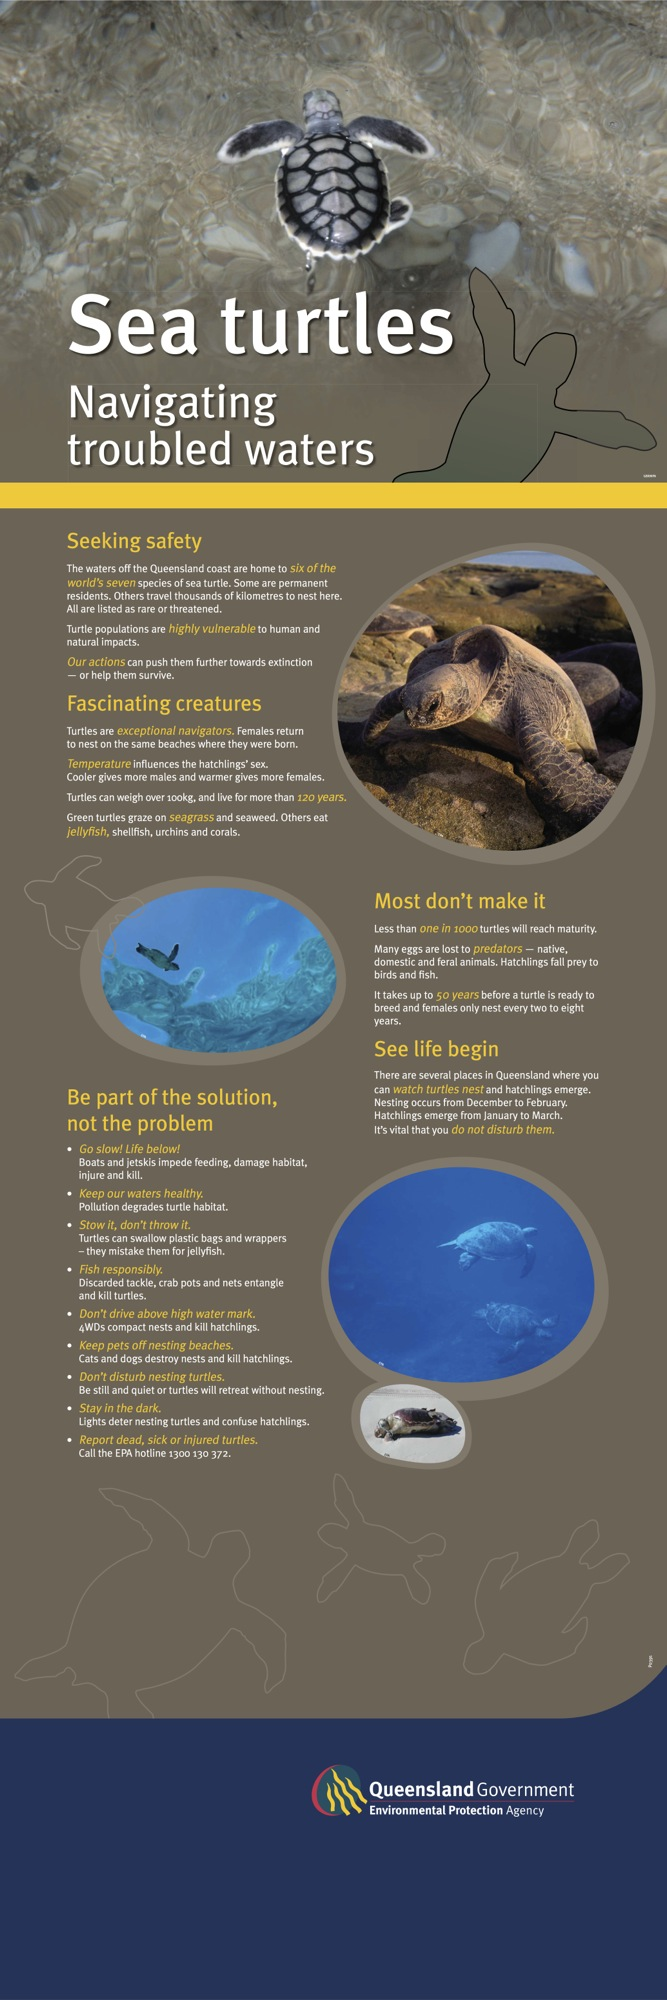 QPWS sea turtles banner